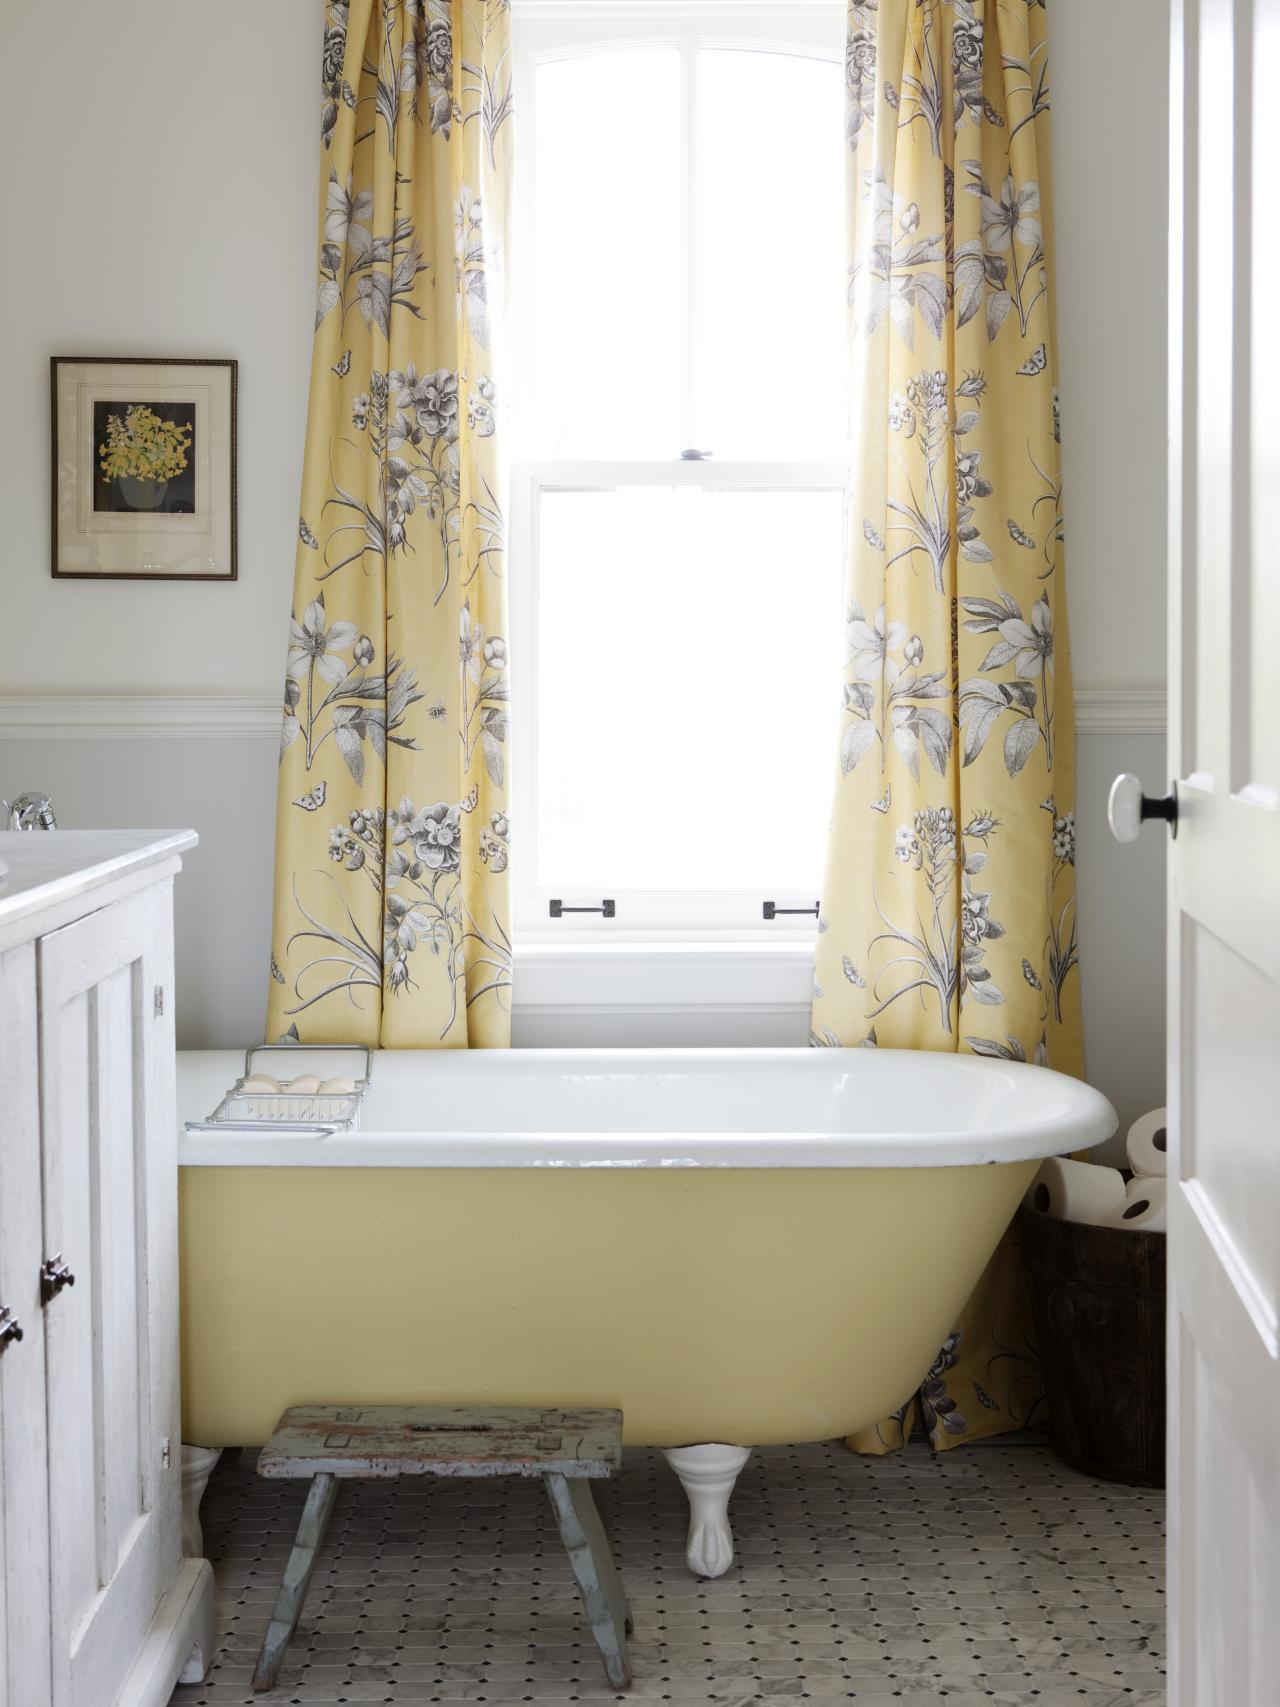 8 bathroom makeovers from fave hgtv designers bathroom for Bathroom ideas yellow tile